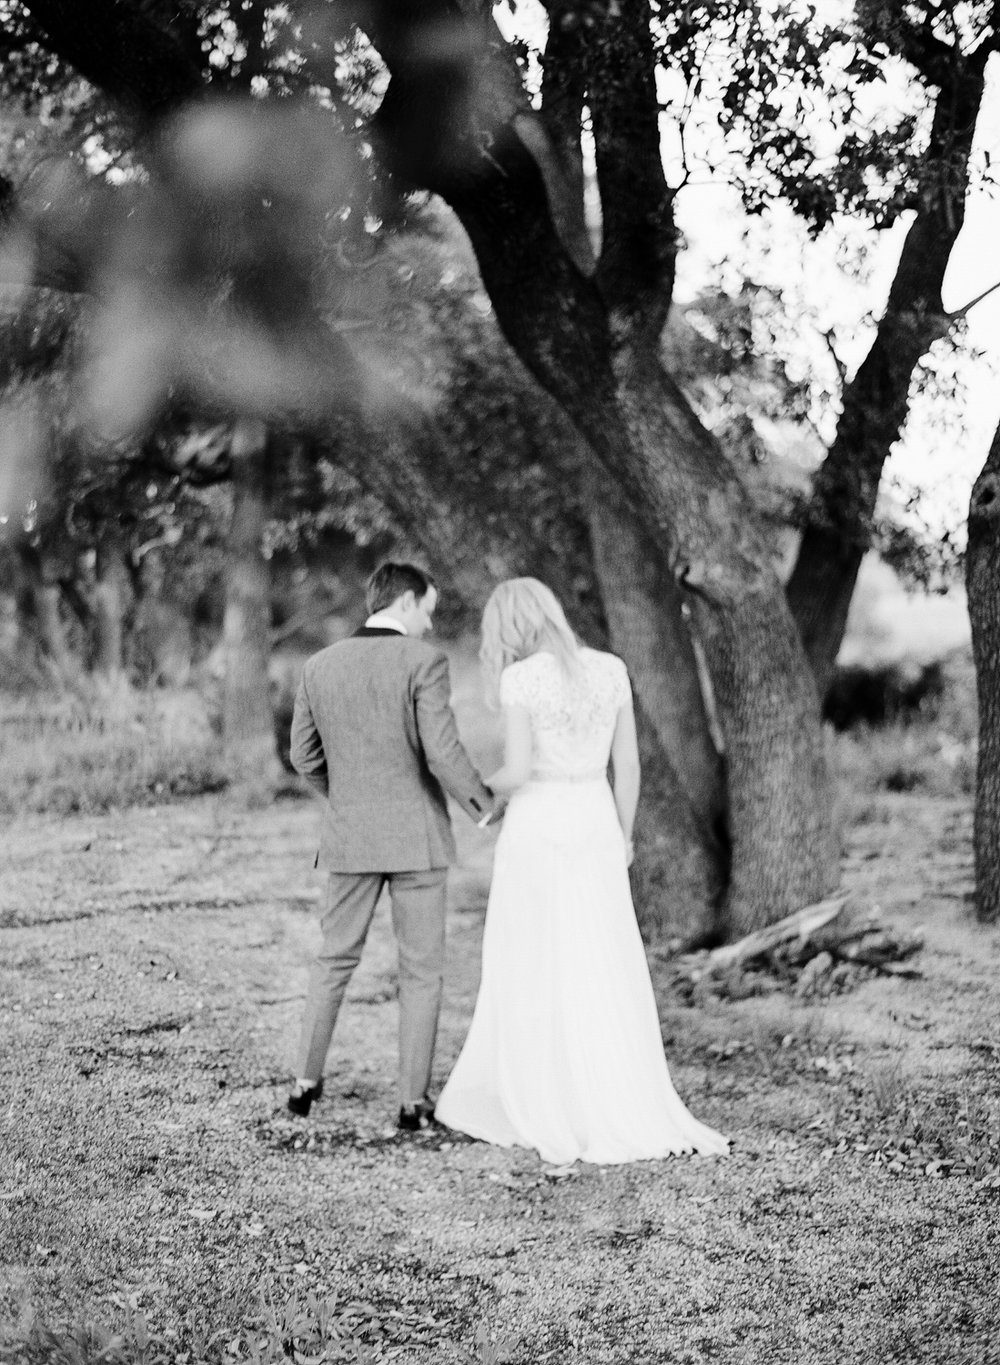 PROSPECT_HOUSE_WEDDING_AUSTIN_TX_BY_MATTHEW_MOORE_PHOTOGRAPHY_00588-2.jpg